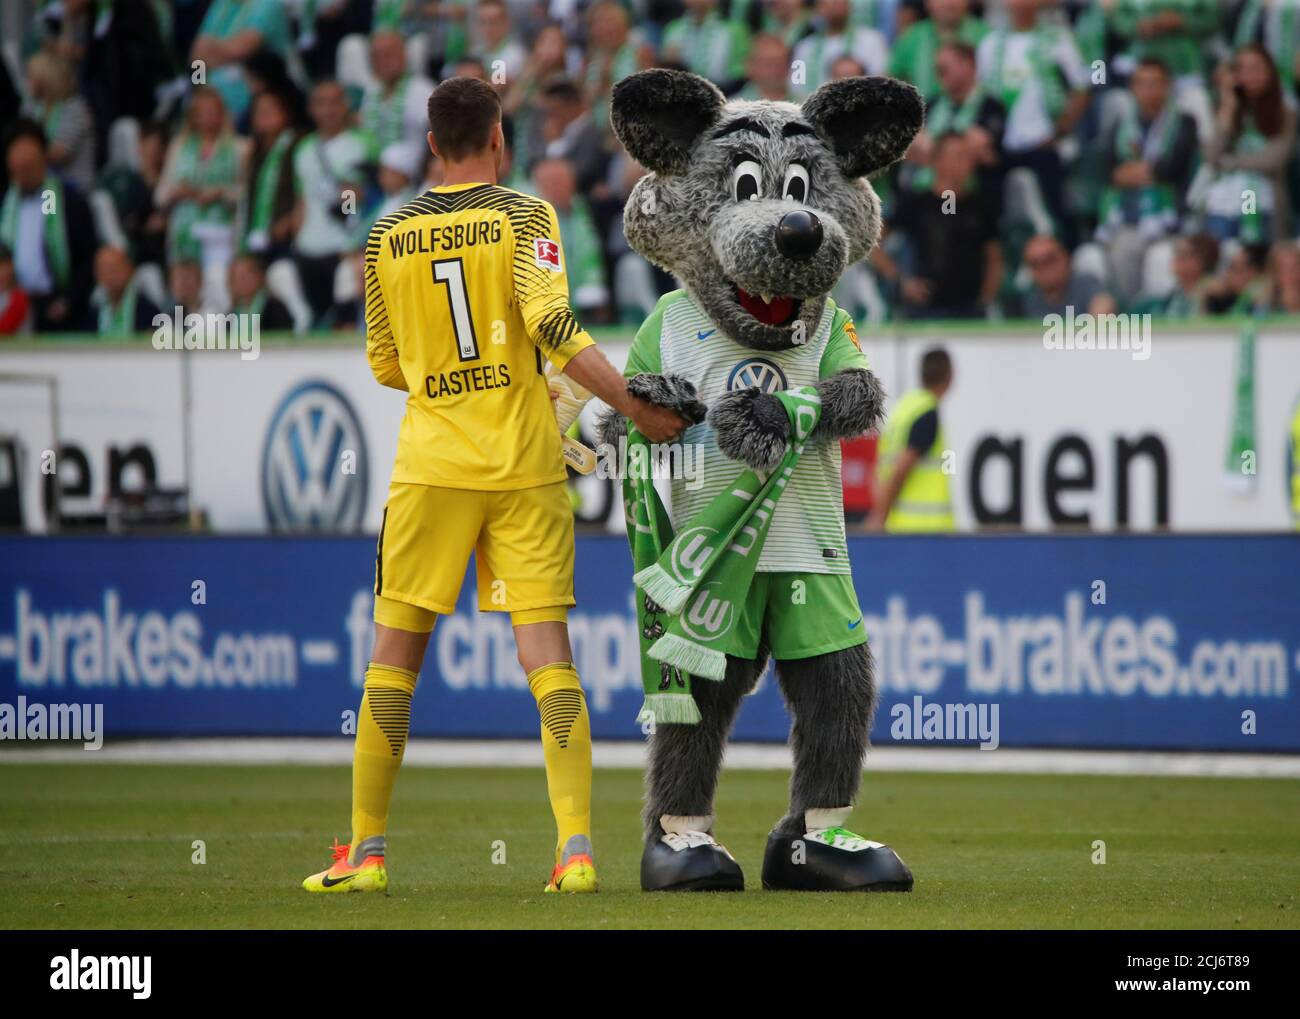 Soccer Football Bundesliga Vfl Wolfsburg V Fc Cologne Volkswagen Arena Wolfsburg Germany May 12 2018 Wolfsburg S Koen Casteels Celebrates With The Mascot After The Match Reuters Wolfgang Rattay Dfl